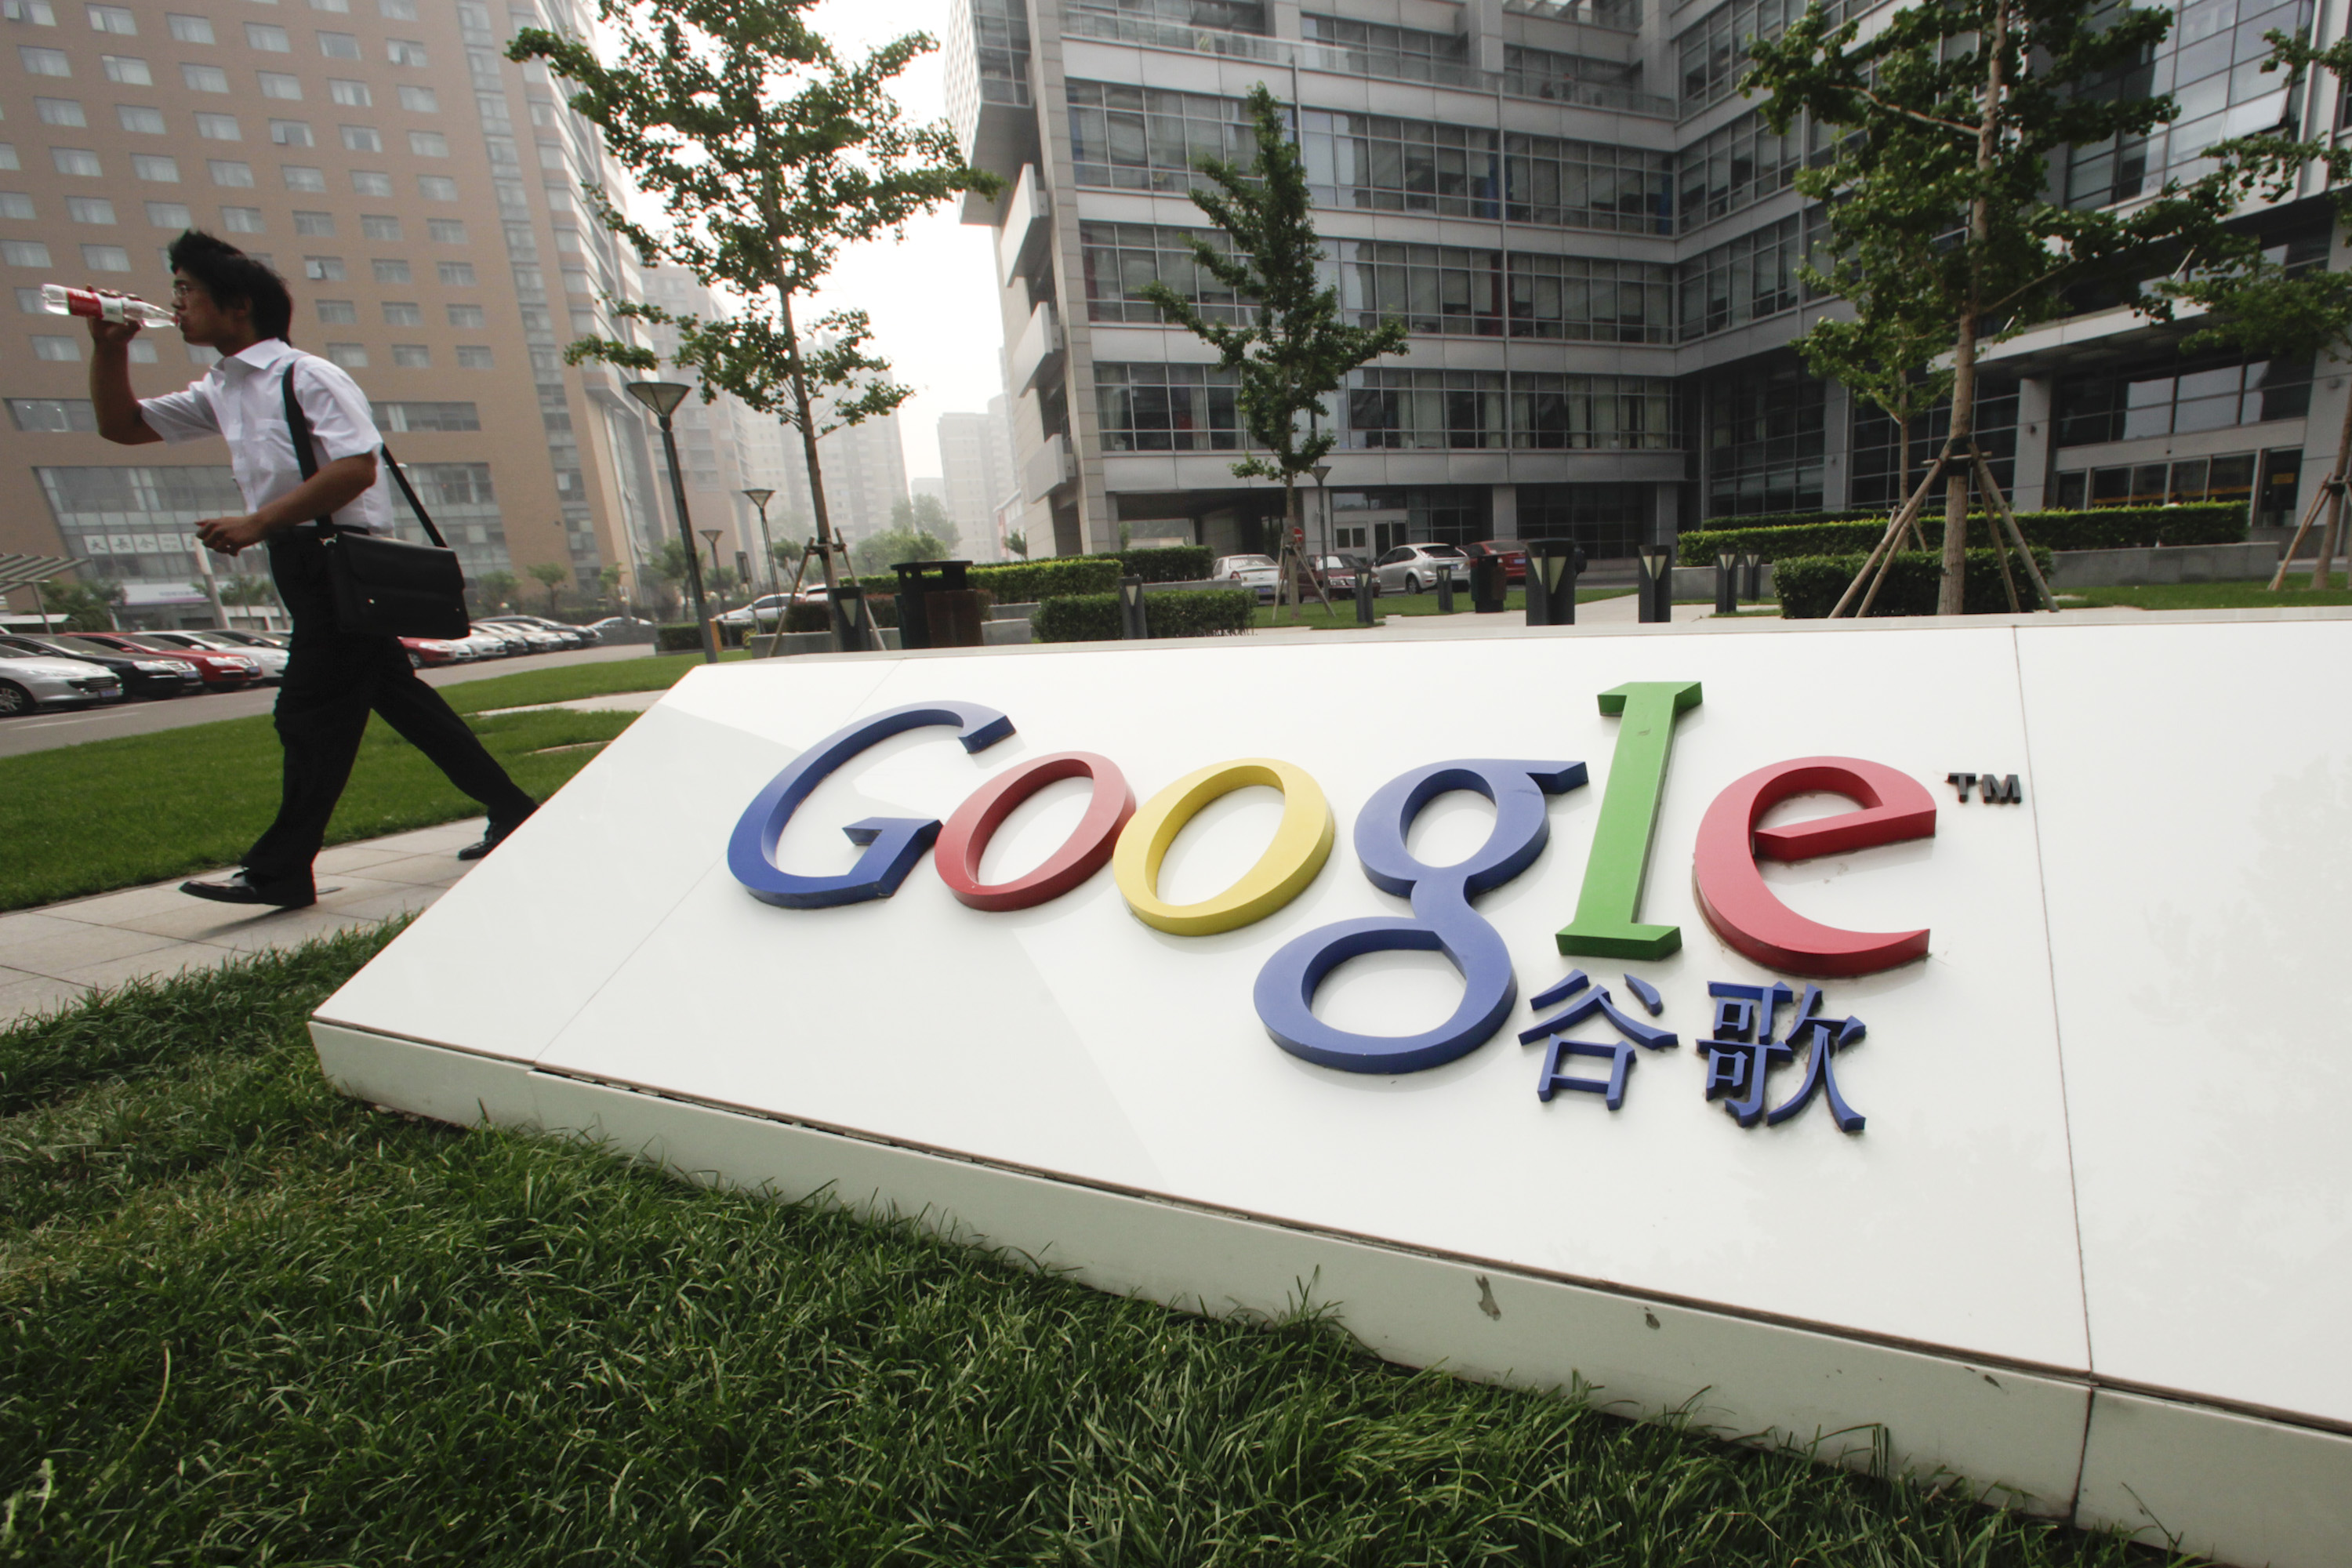 A pedestrian walks past Google Inc.'s China headquarters in Beijing, China, on Tuesday, June 29, 2010.